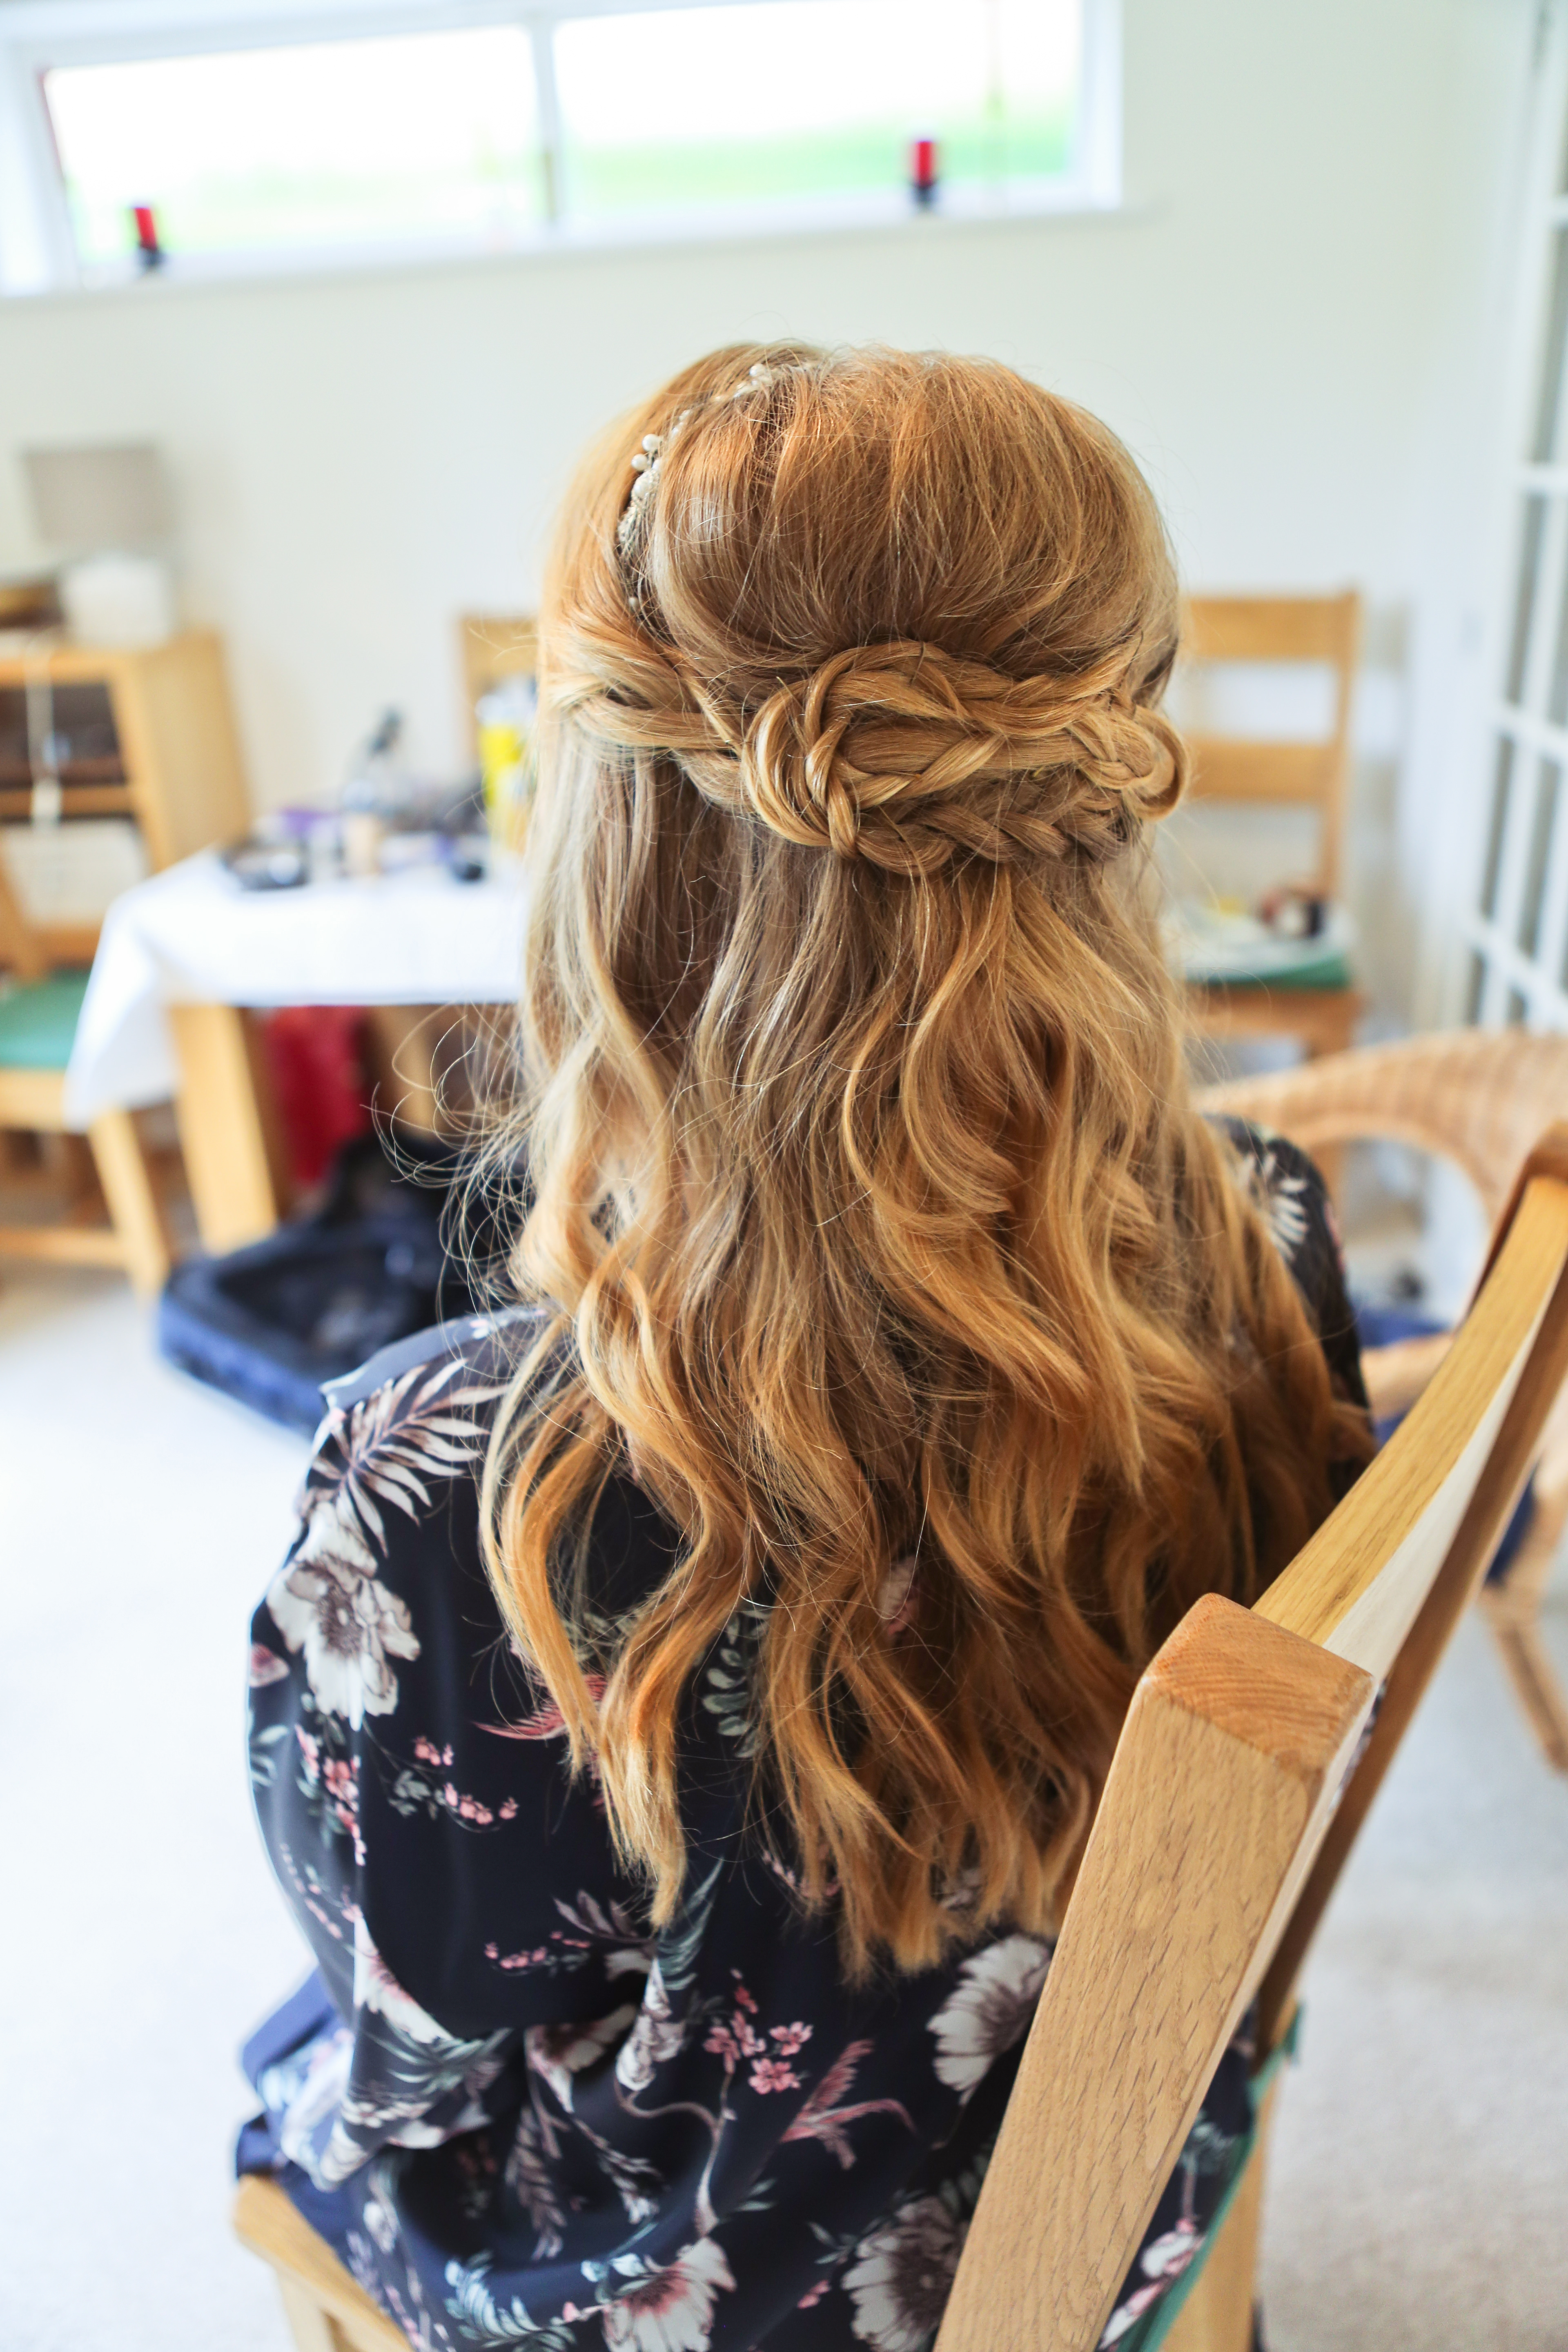 Boho Chic Hair Design